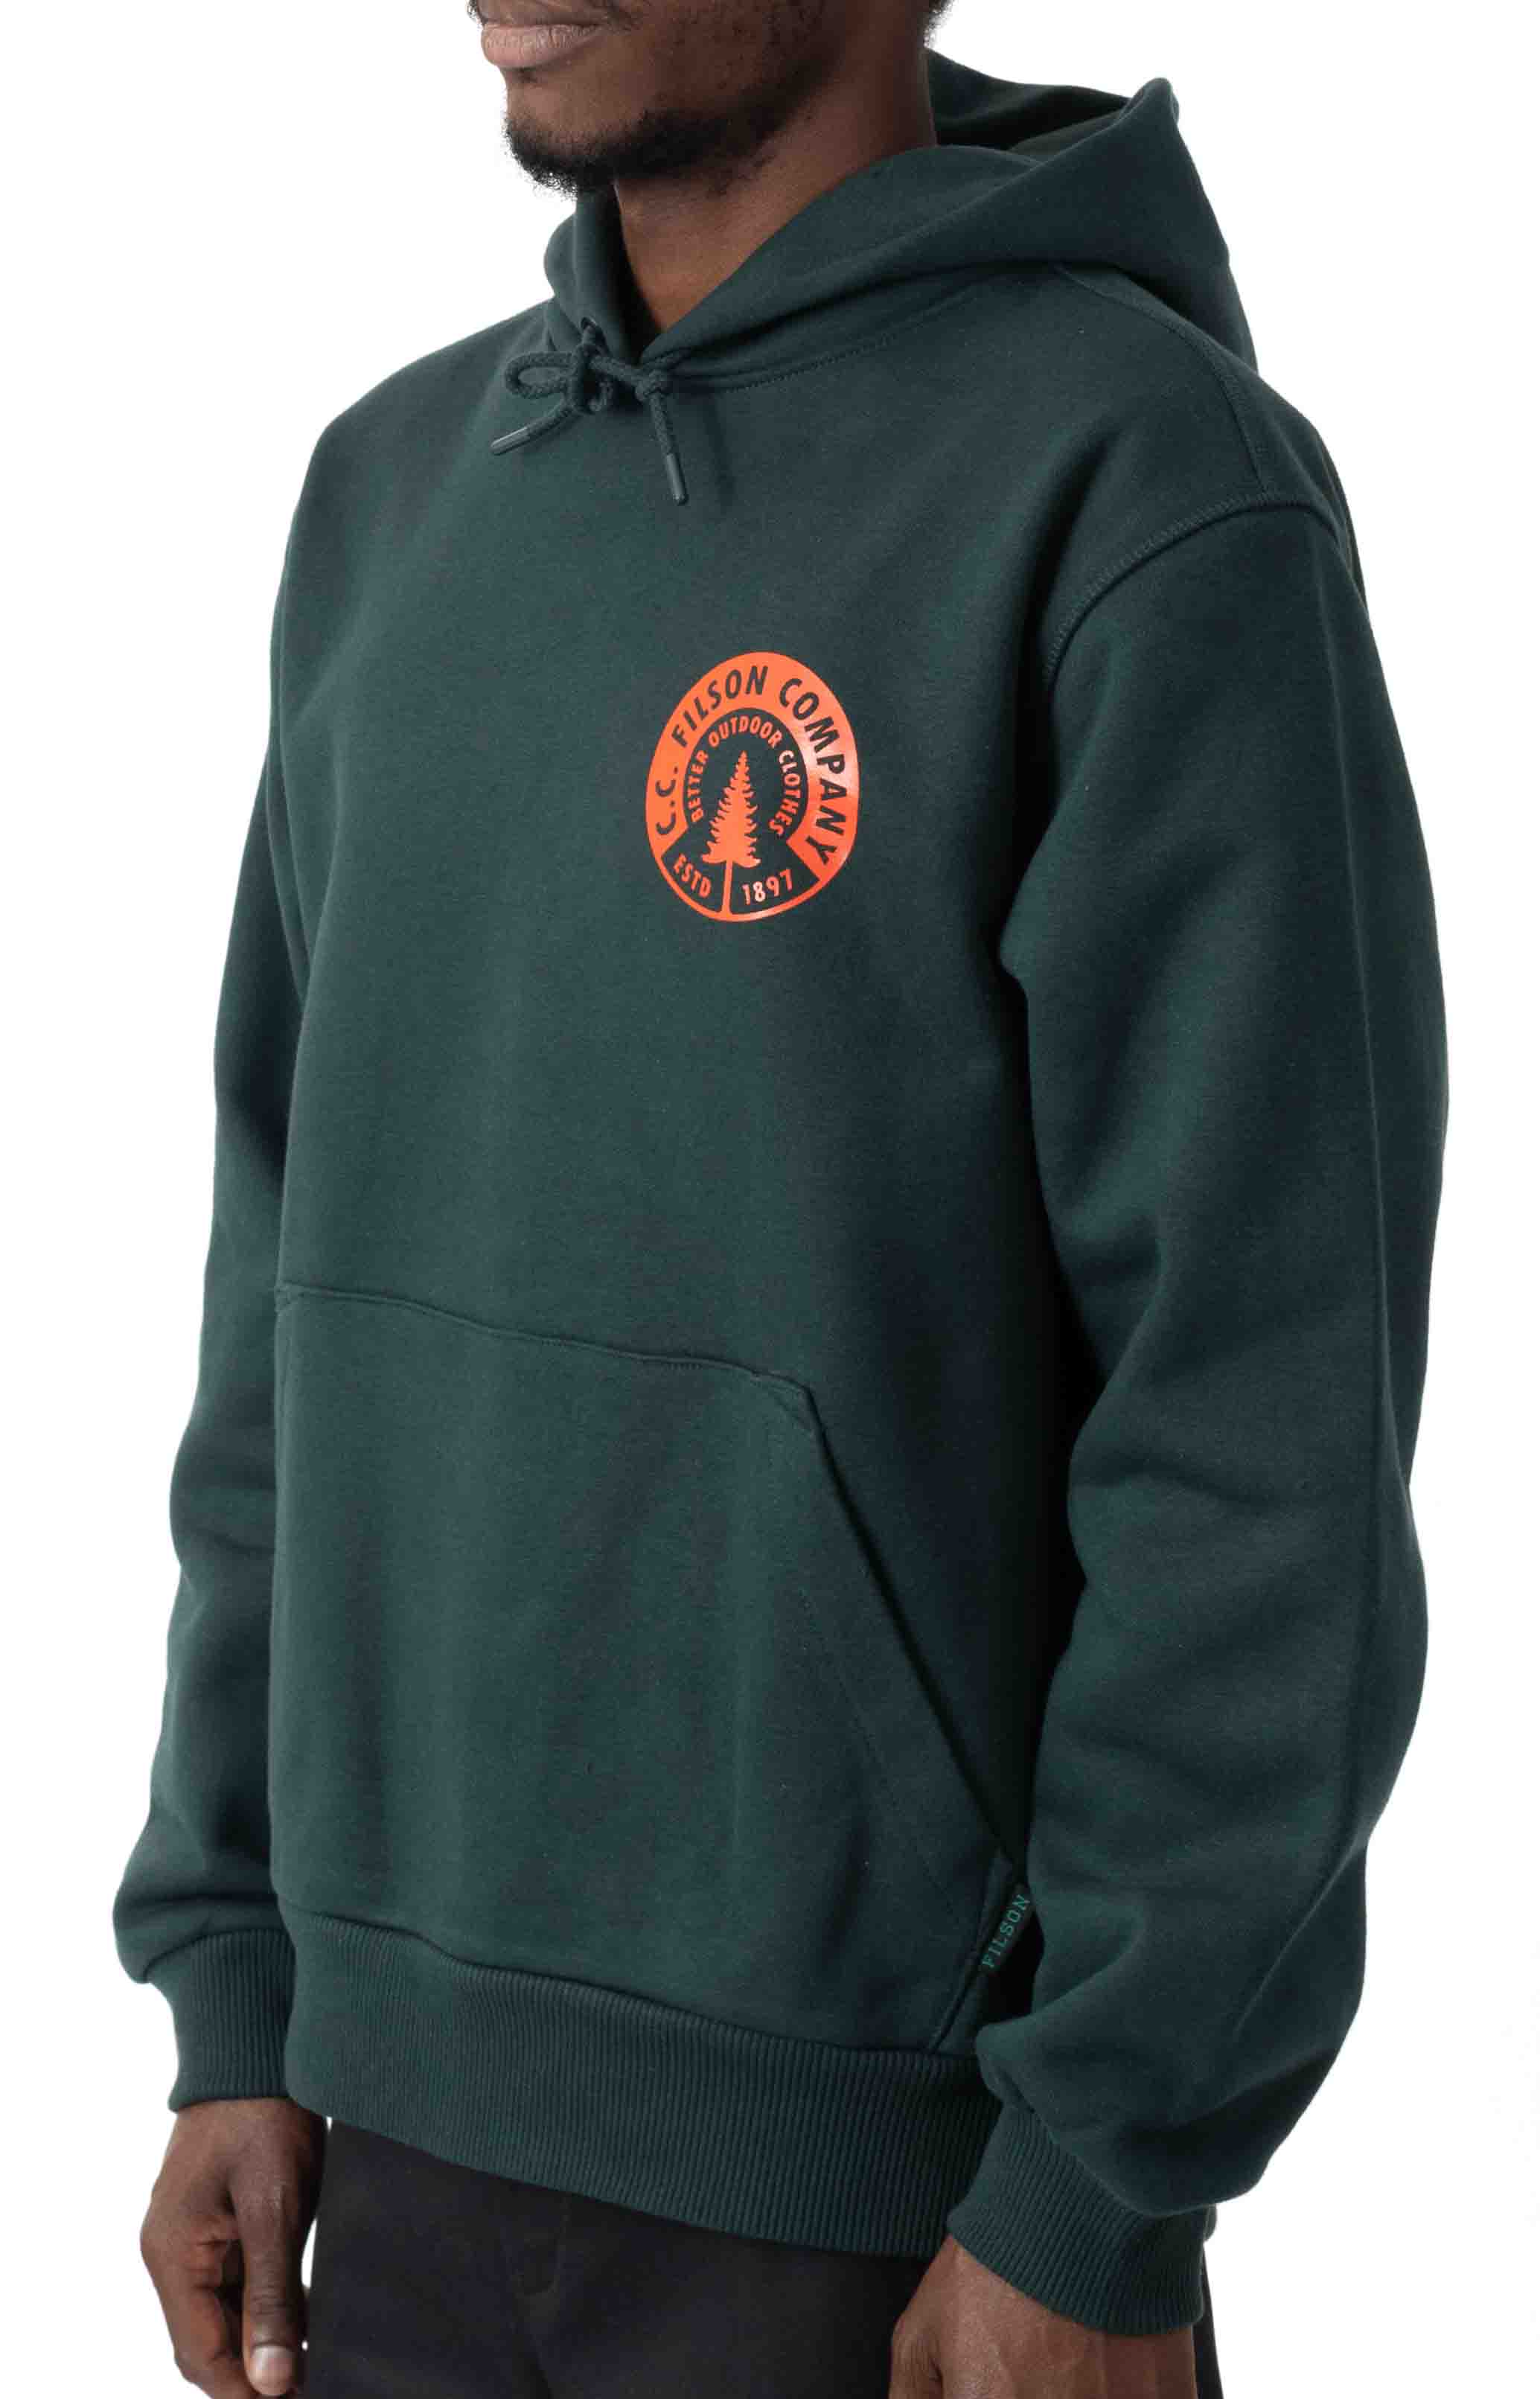 Prospector Graphic Pullover Hoodie - Green  2